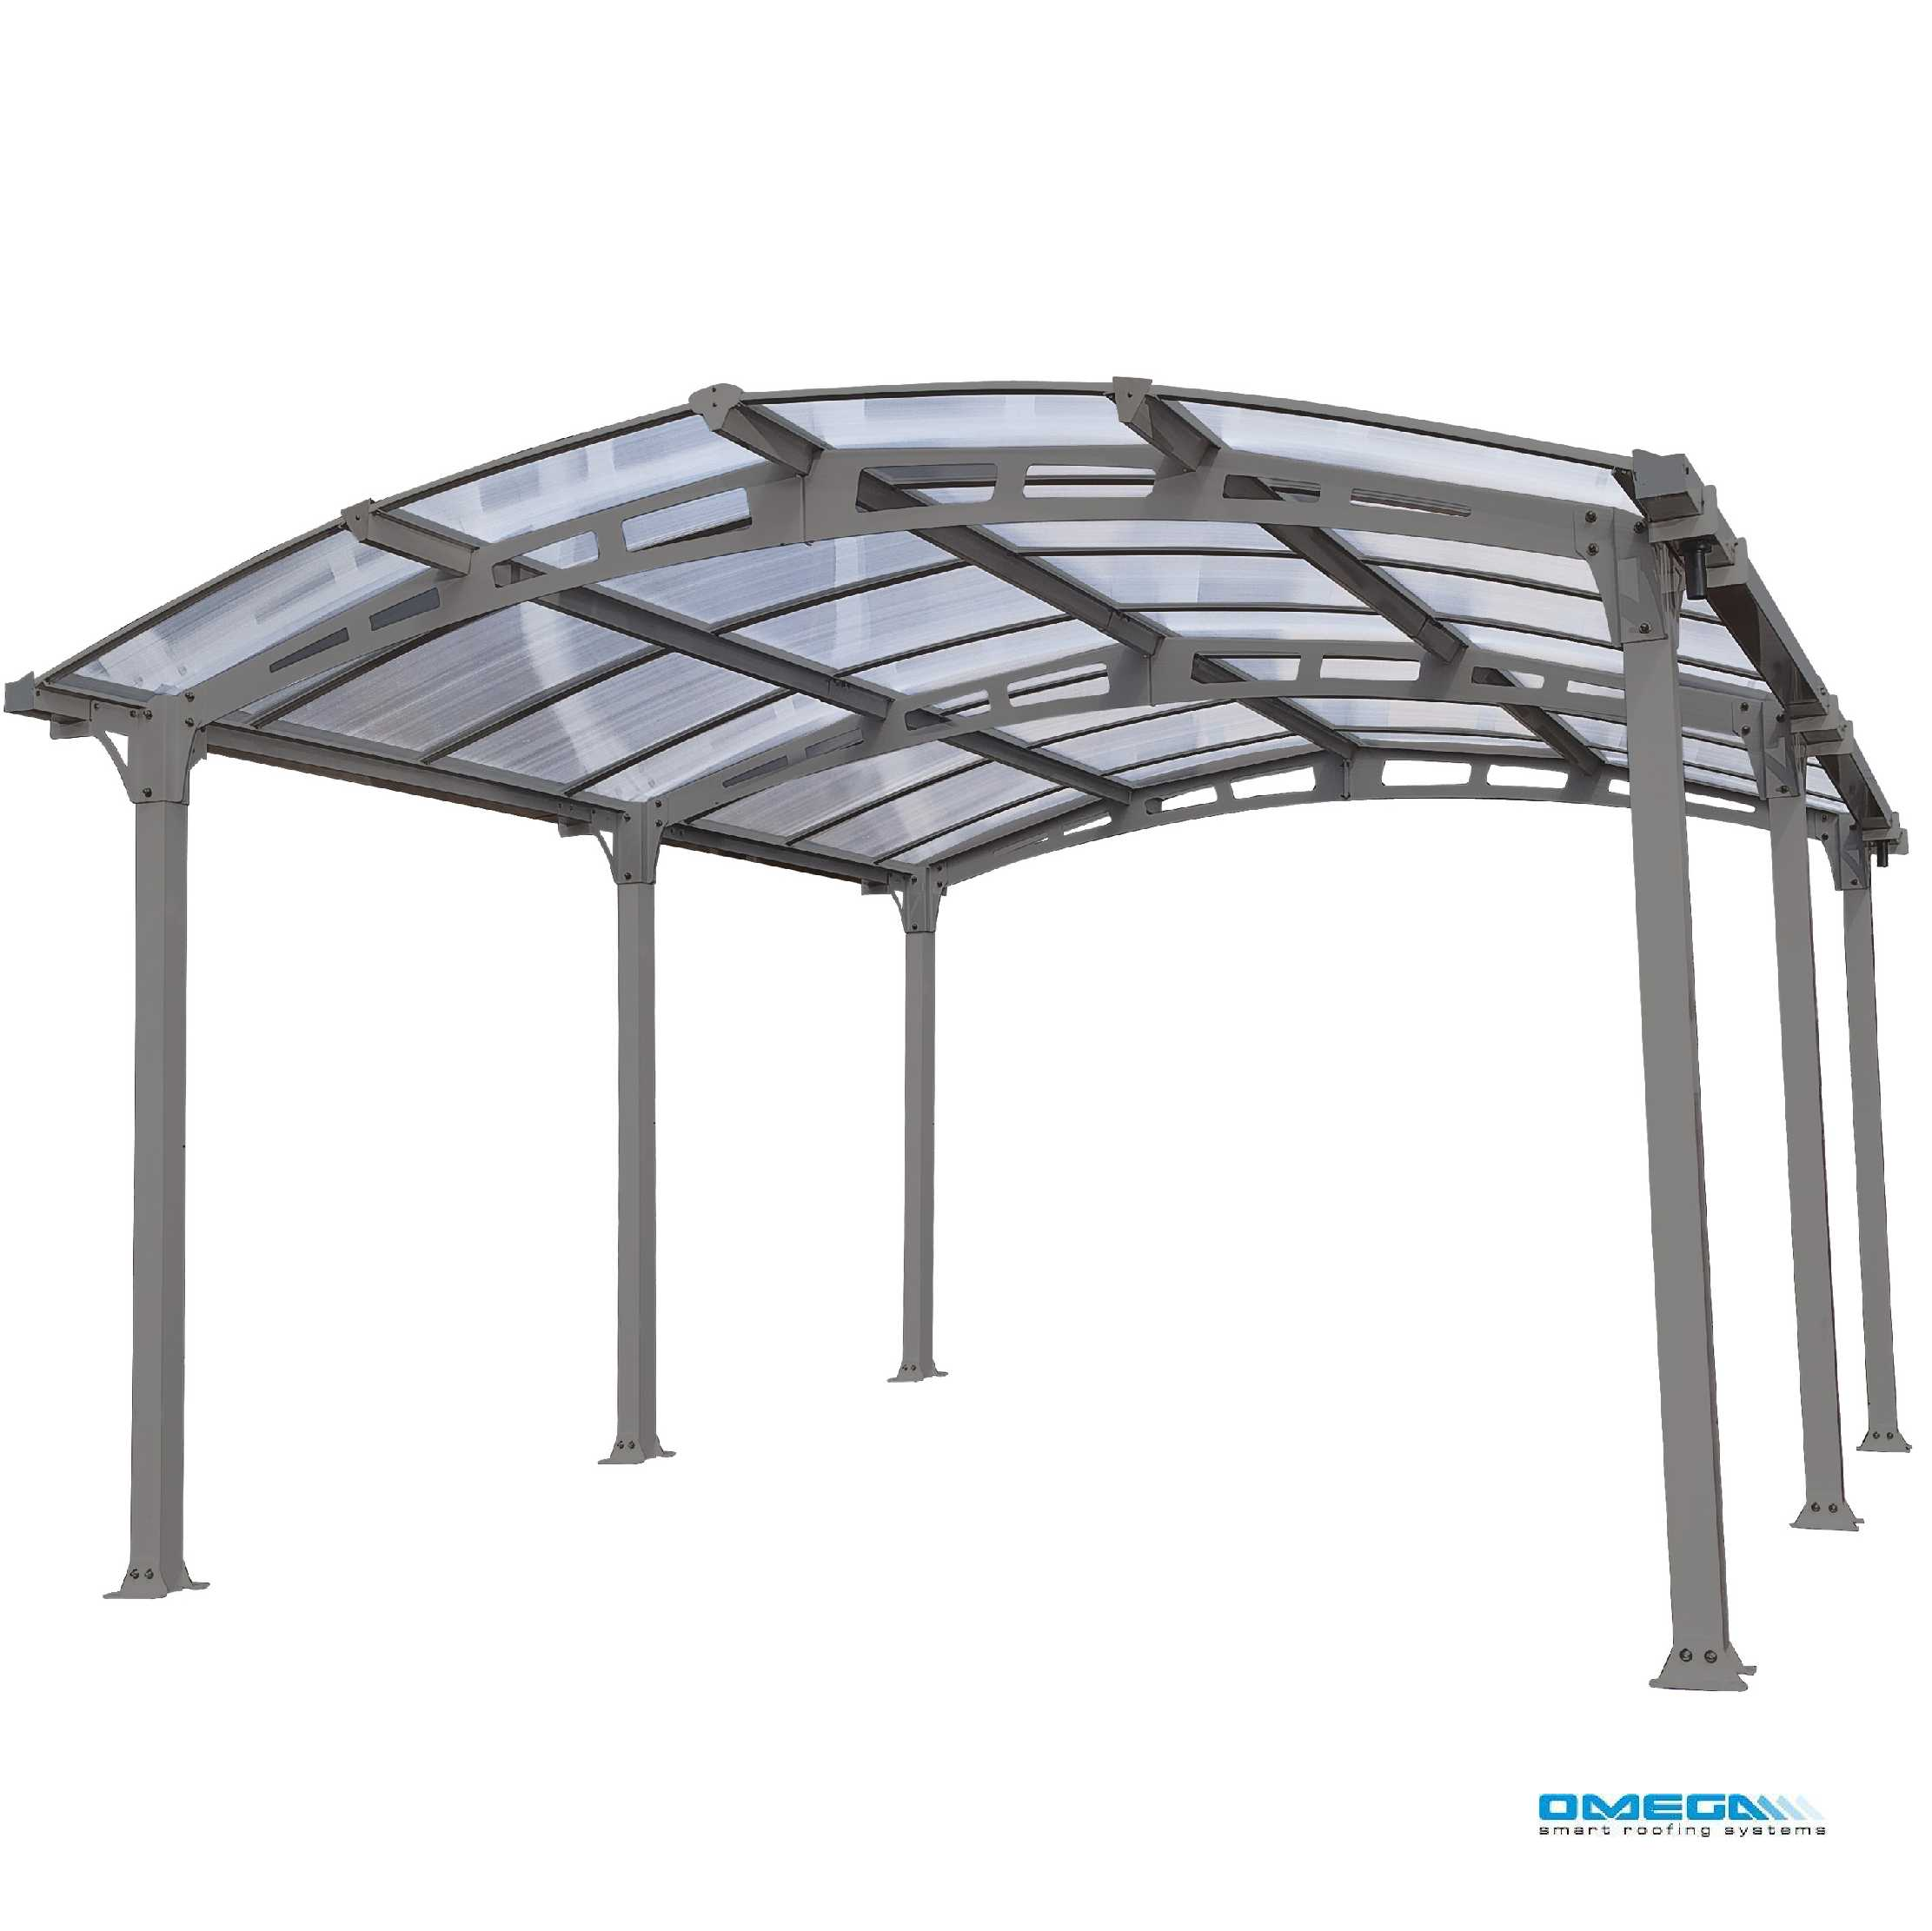 Arcadia 5000 Curved Freestanding canopy 5020 x 3620mm from Omega Build